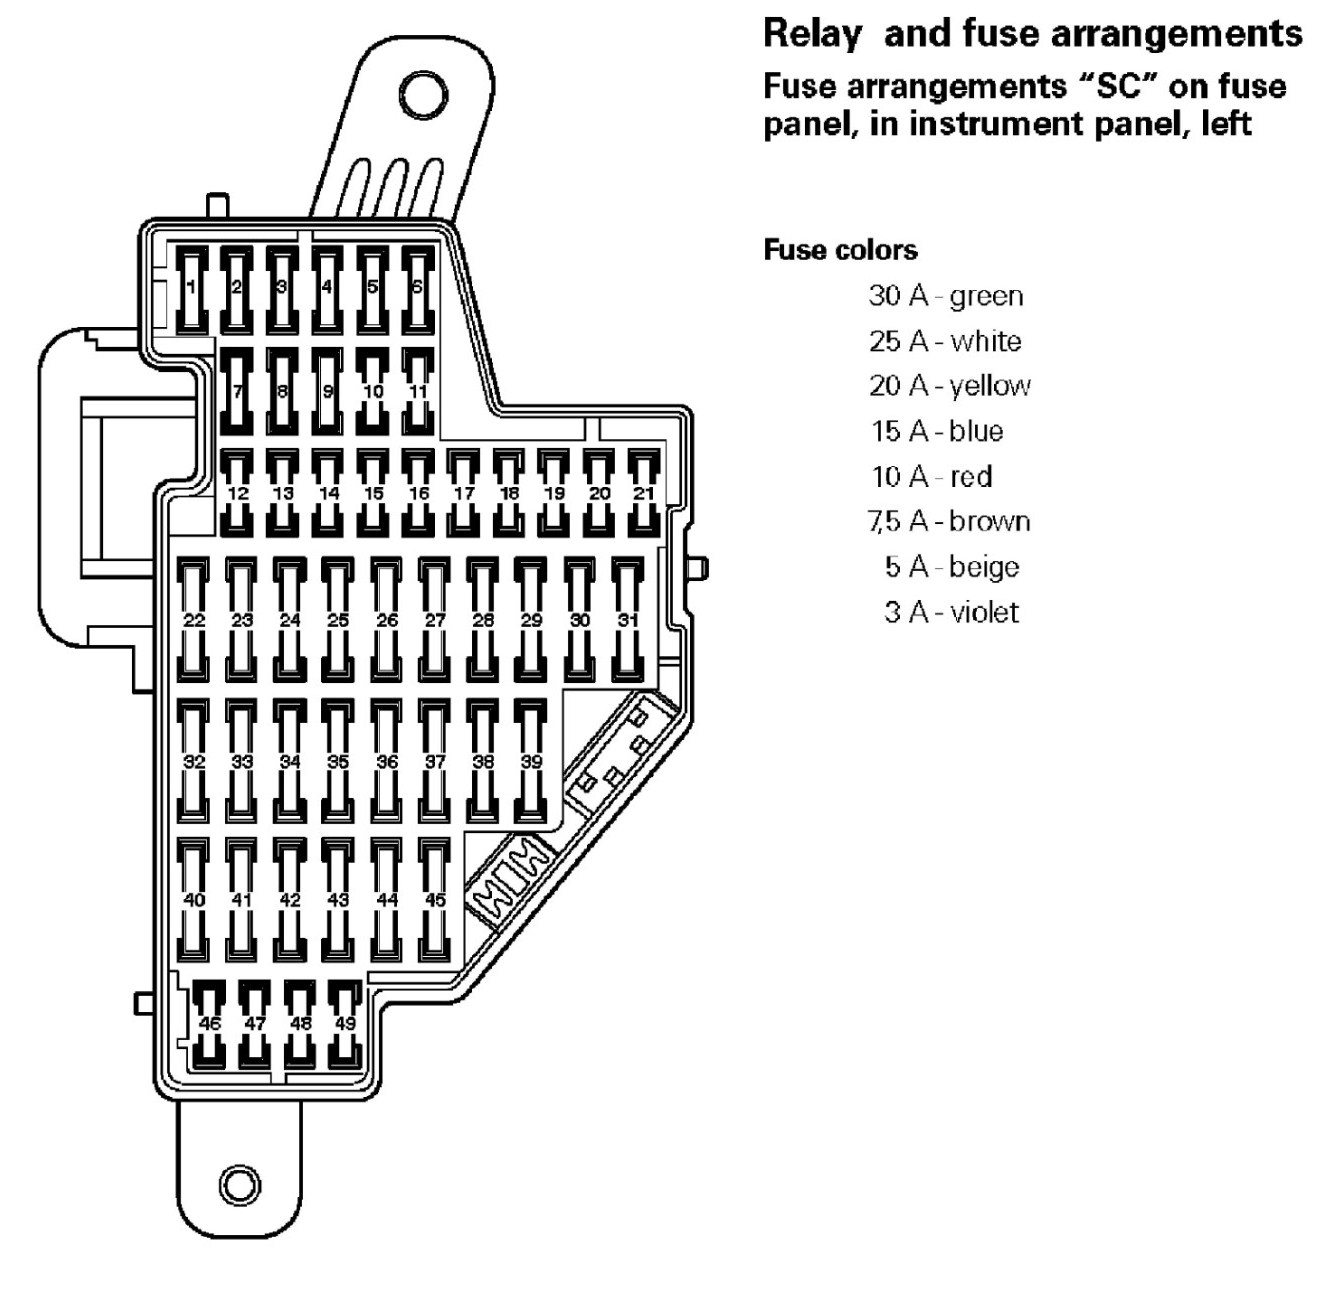 hight resolution of 2006 vw jetta fuse diagram wiring diagram name2006 jetta tdi fuse box wiring diagram expert 2006